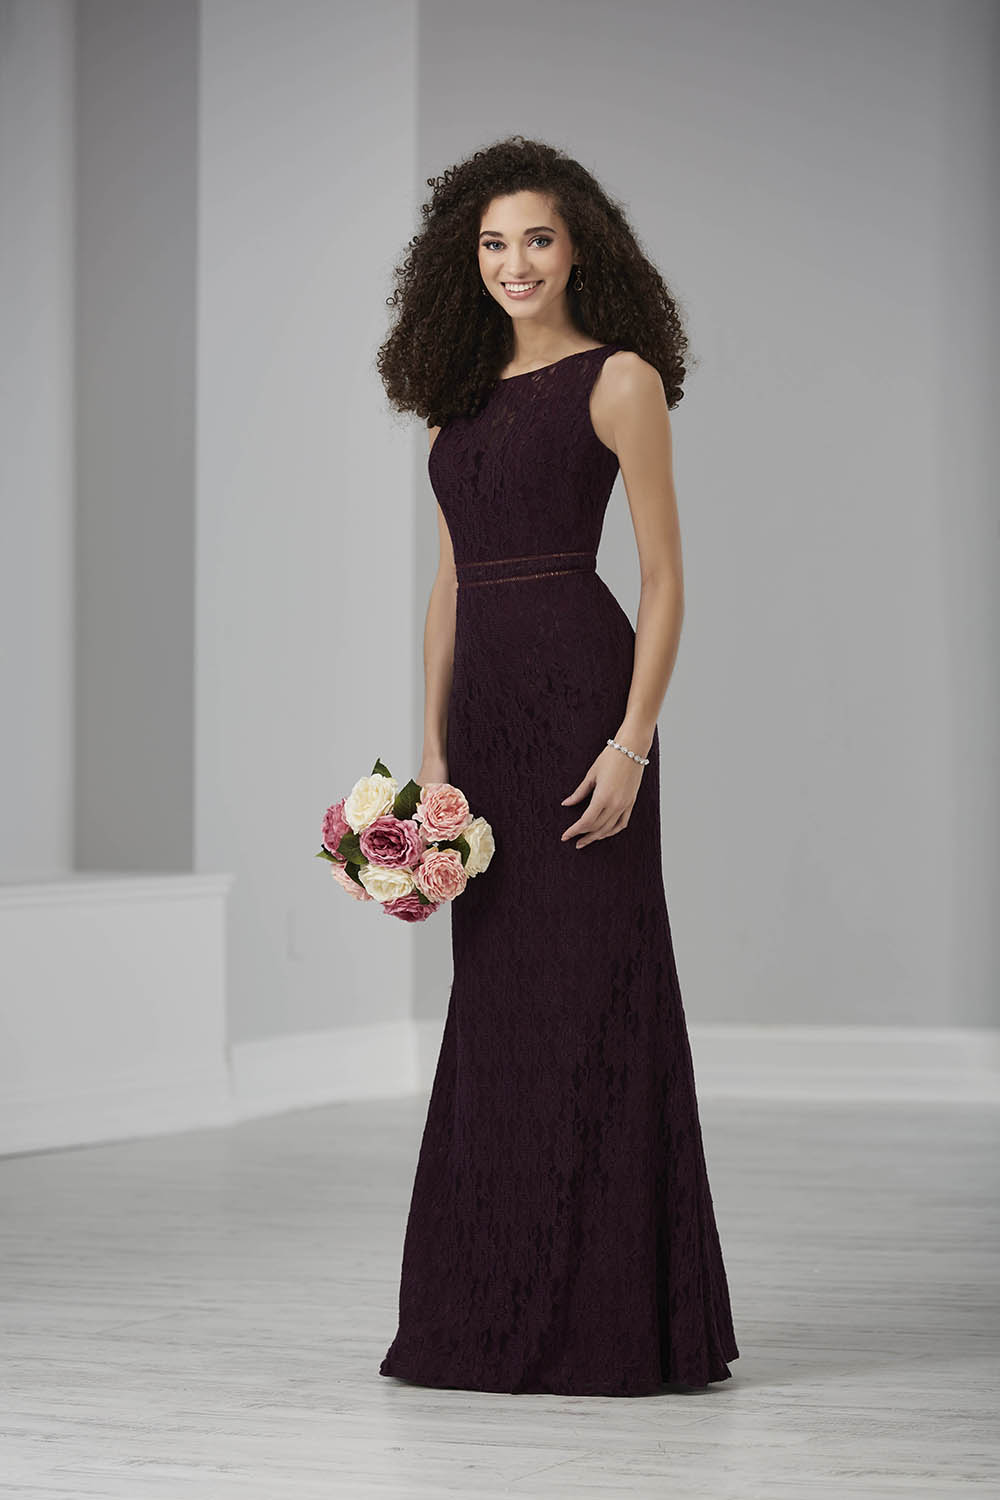 bridesmaid-dresses-jacquelin-bridals-canada-26199